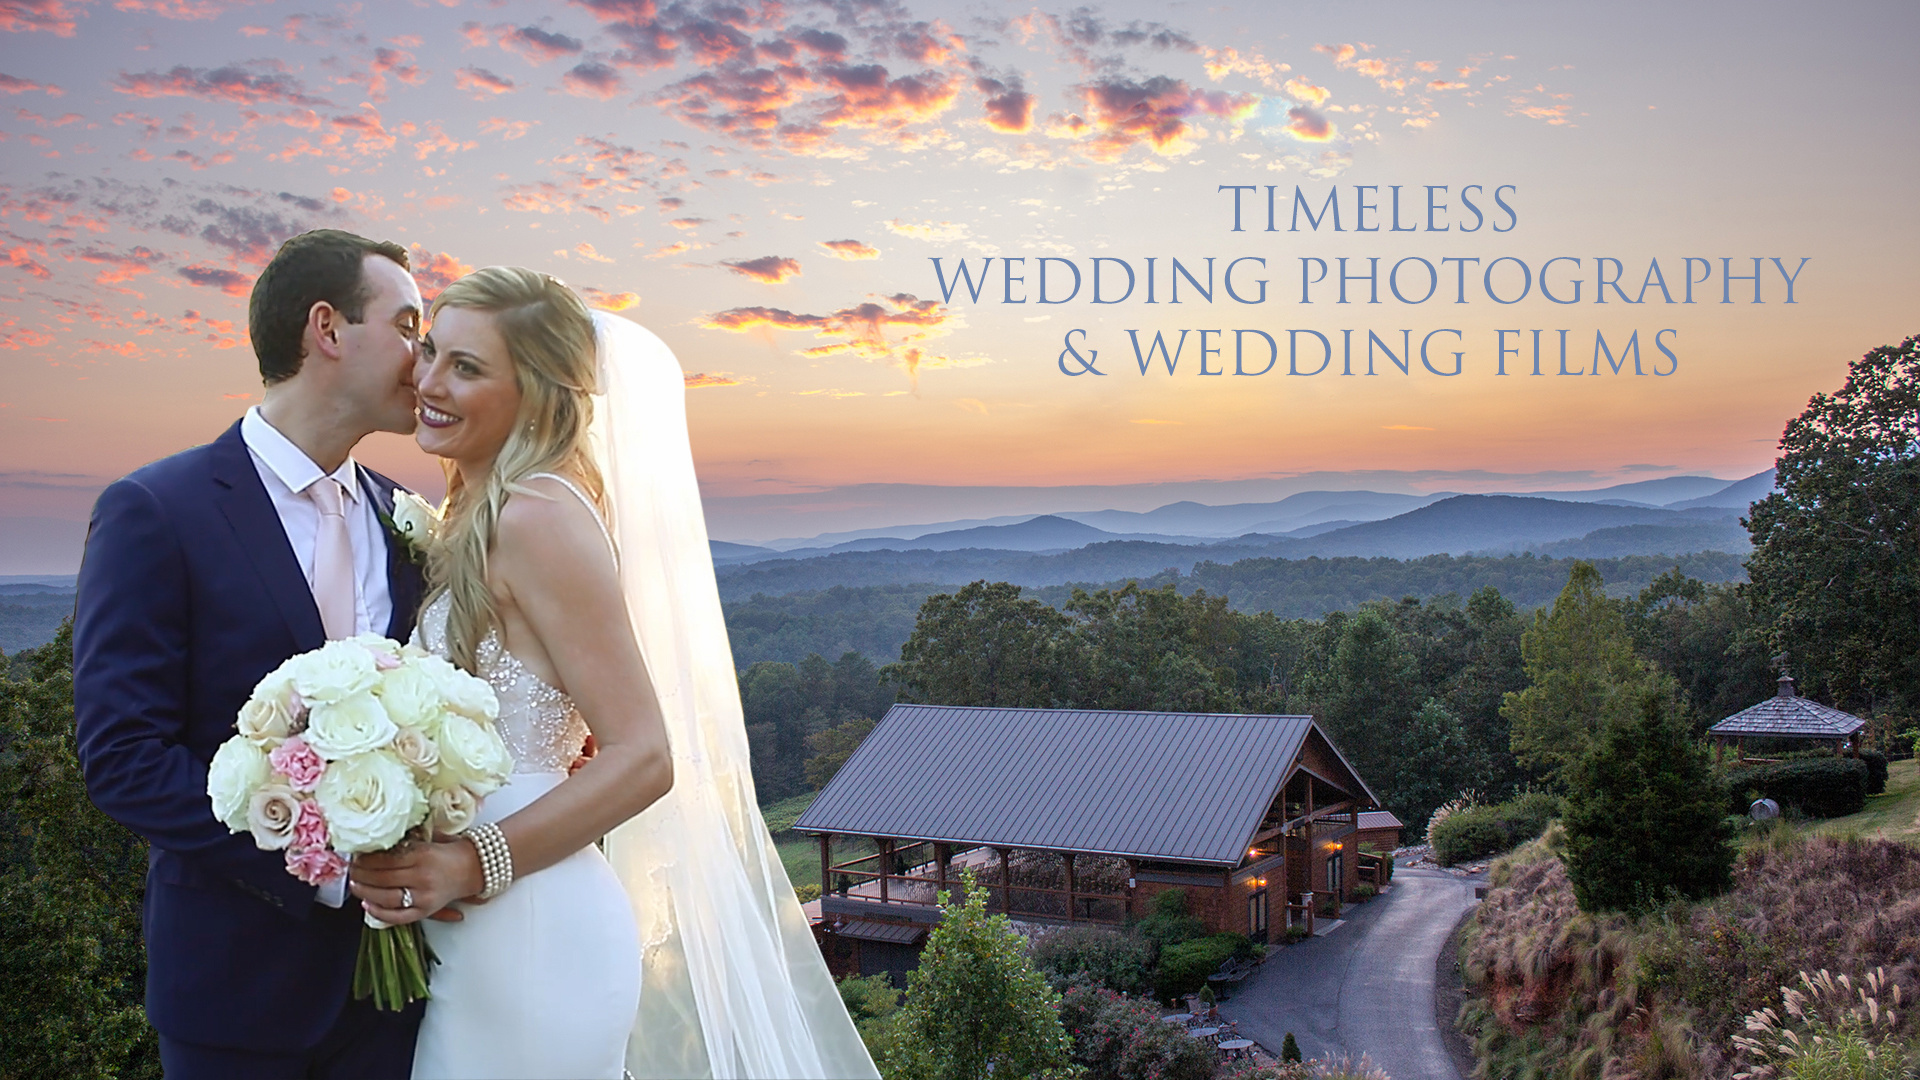 timeless wedding photography and wedding films